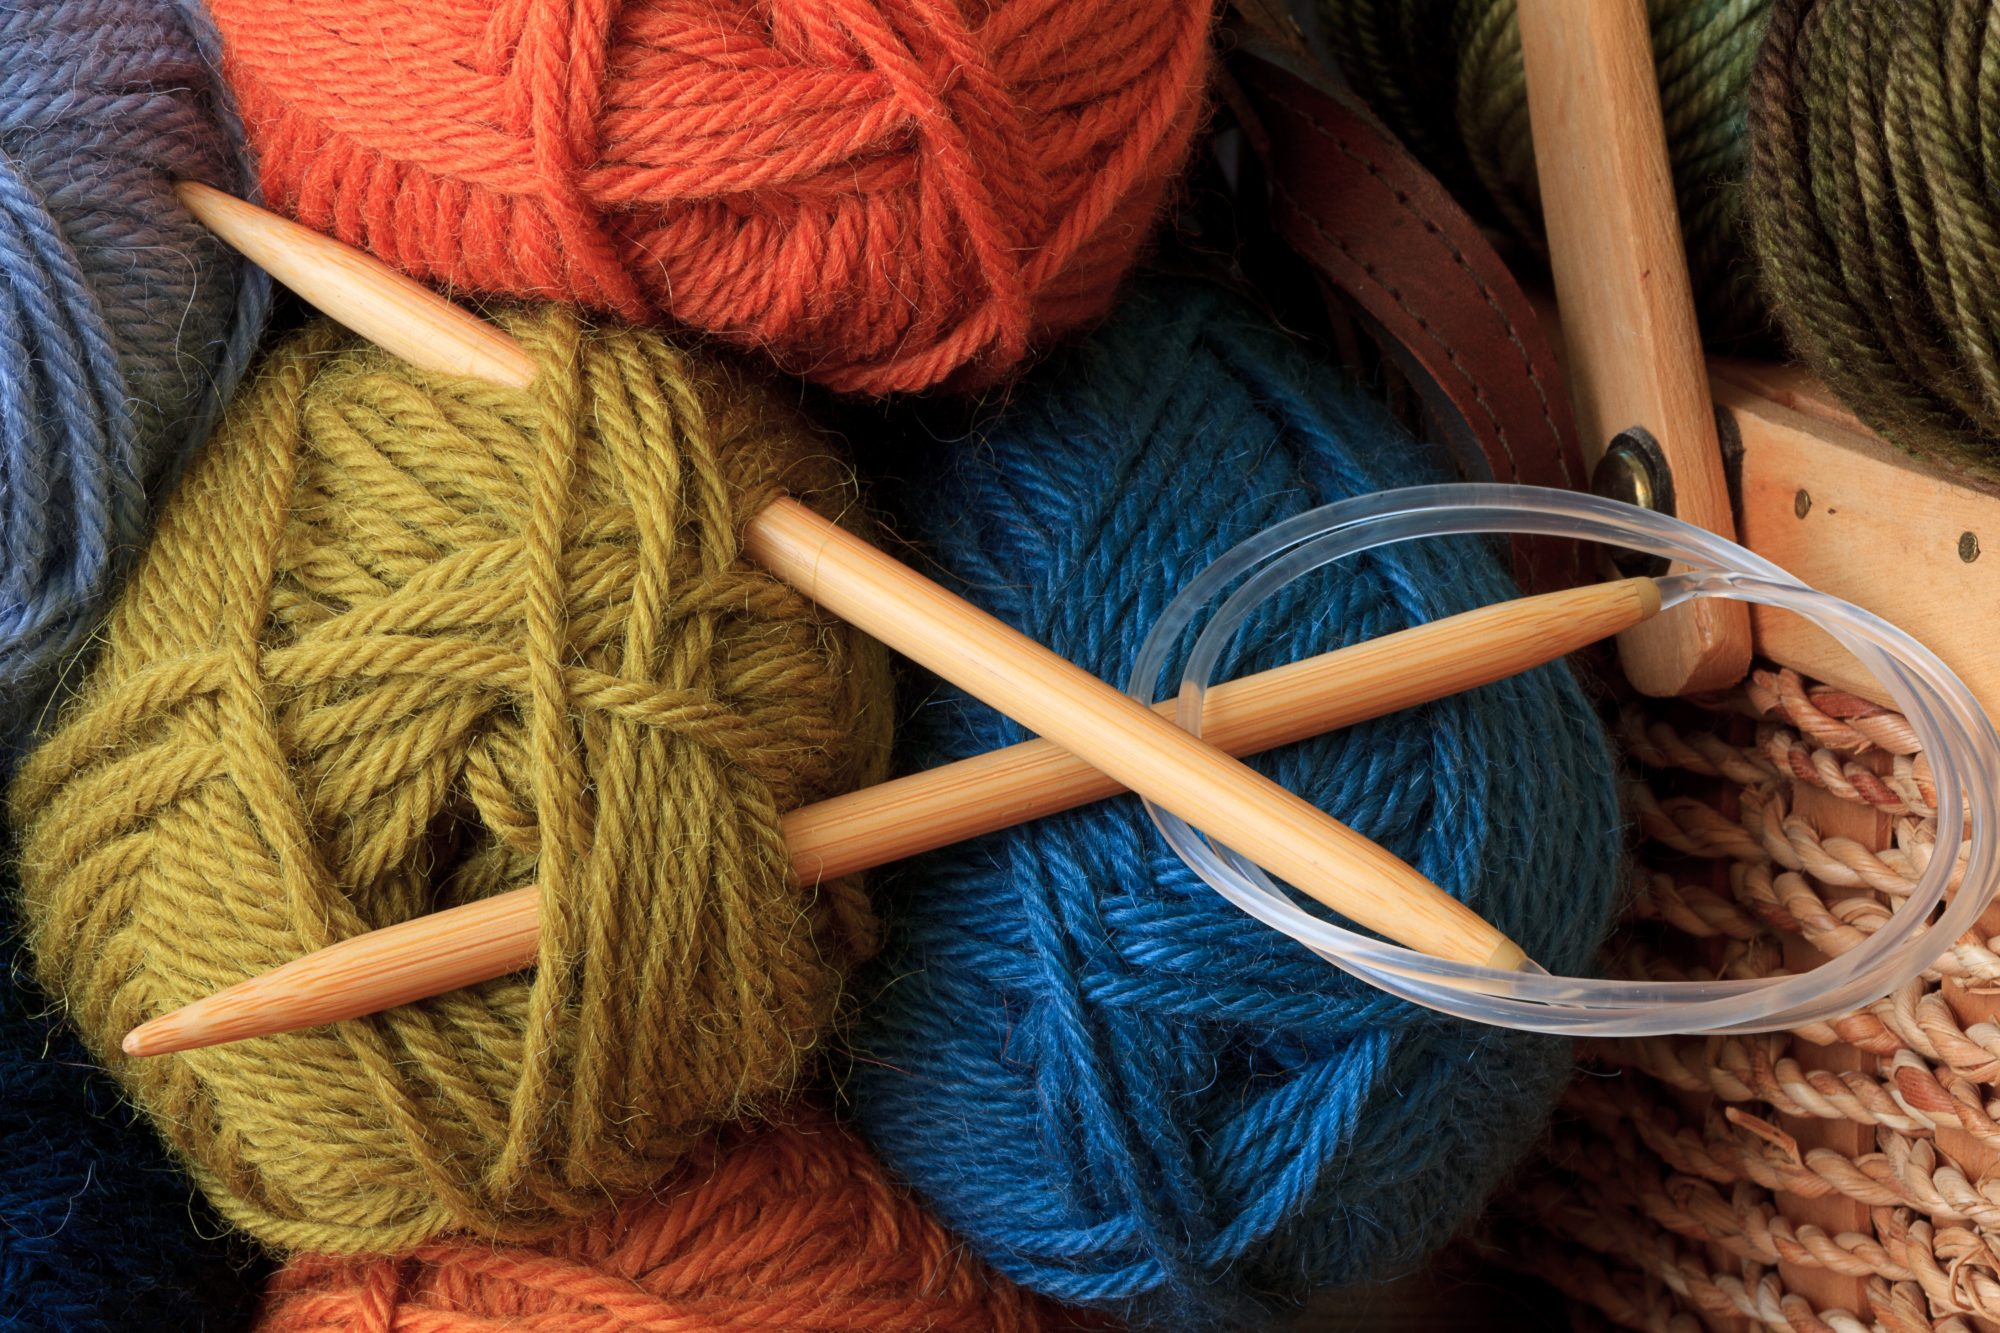 circular knitting needles and yarn